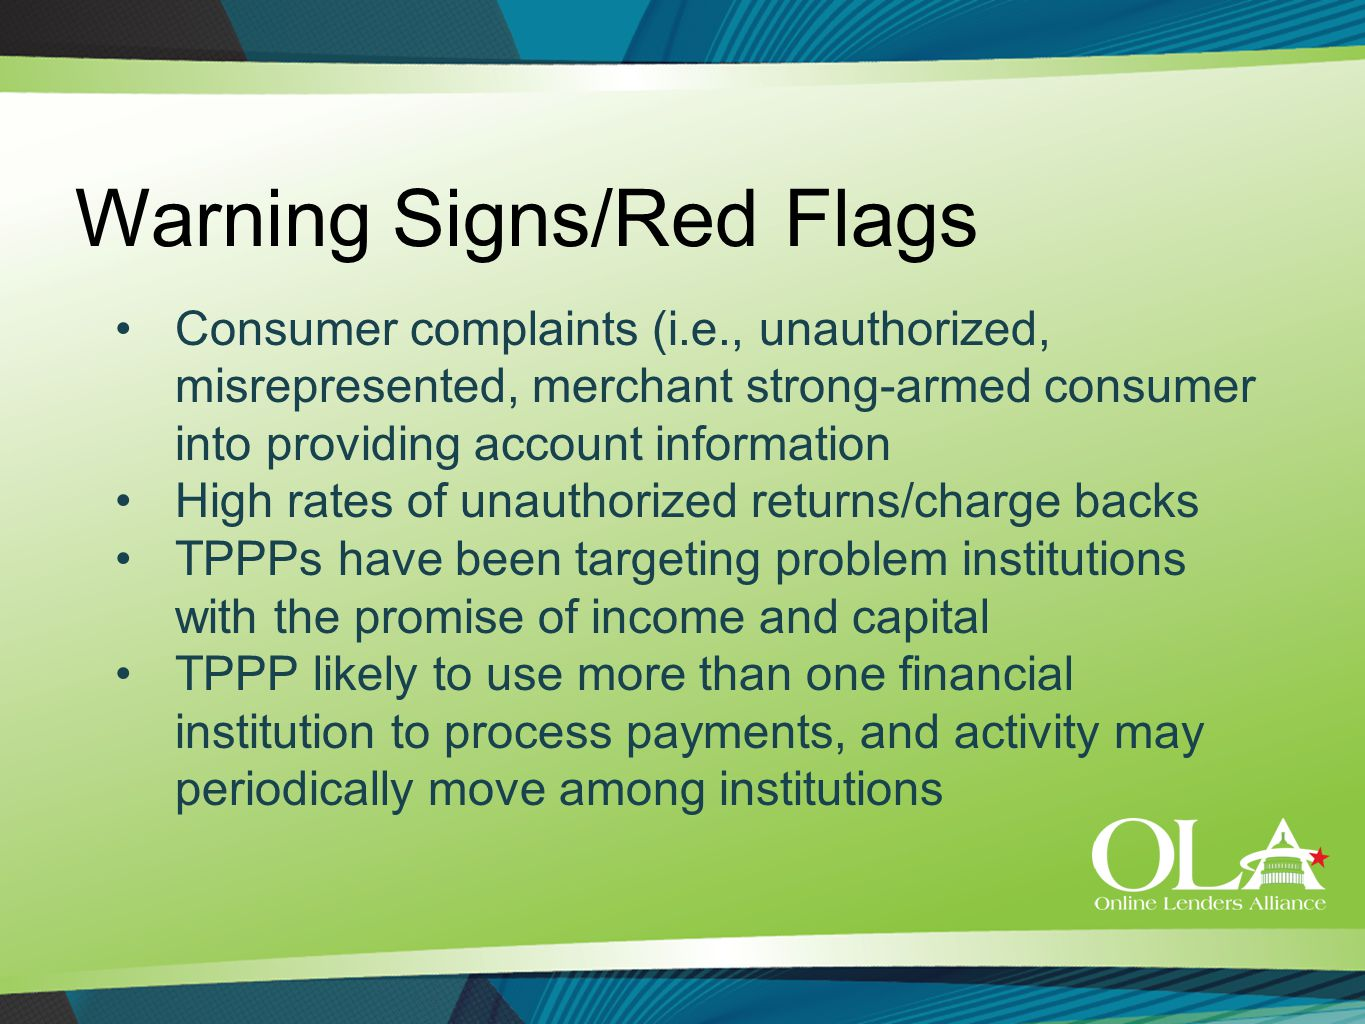 Warning Signs/Red Flags Consumer complaints (i.e., unauthorized, misrepresented, merchant strong-armed consumer into providing account information High rates of unauthorized returns/charge backs TPPPs have been targeting problem institutions with the promise of income and capital TPPP likely to use more than one financial institution to process payments, and activity may periodically move among institutions